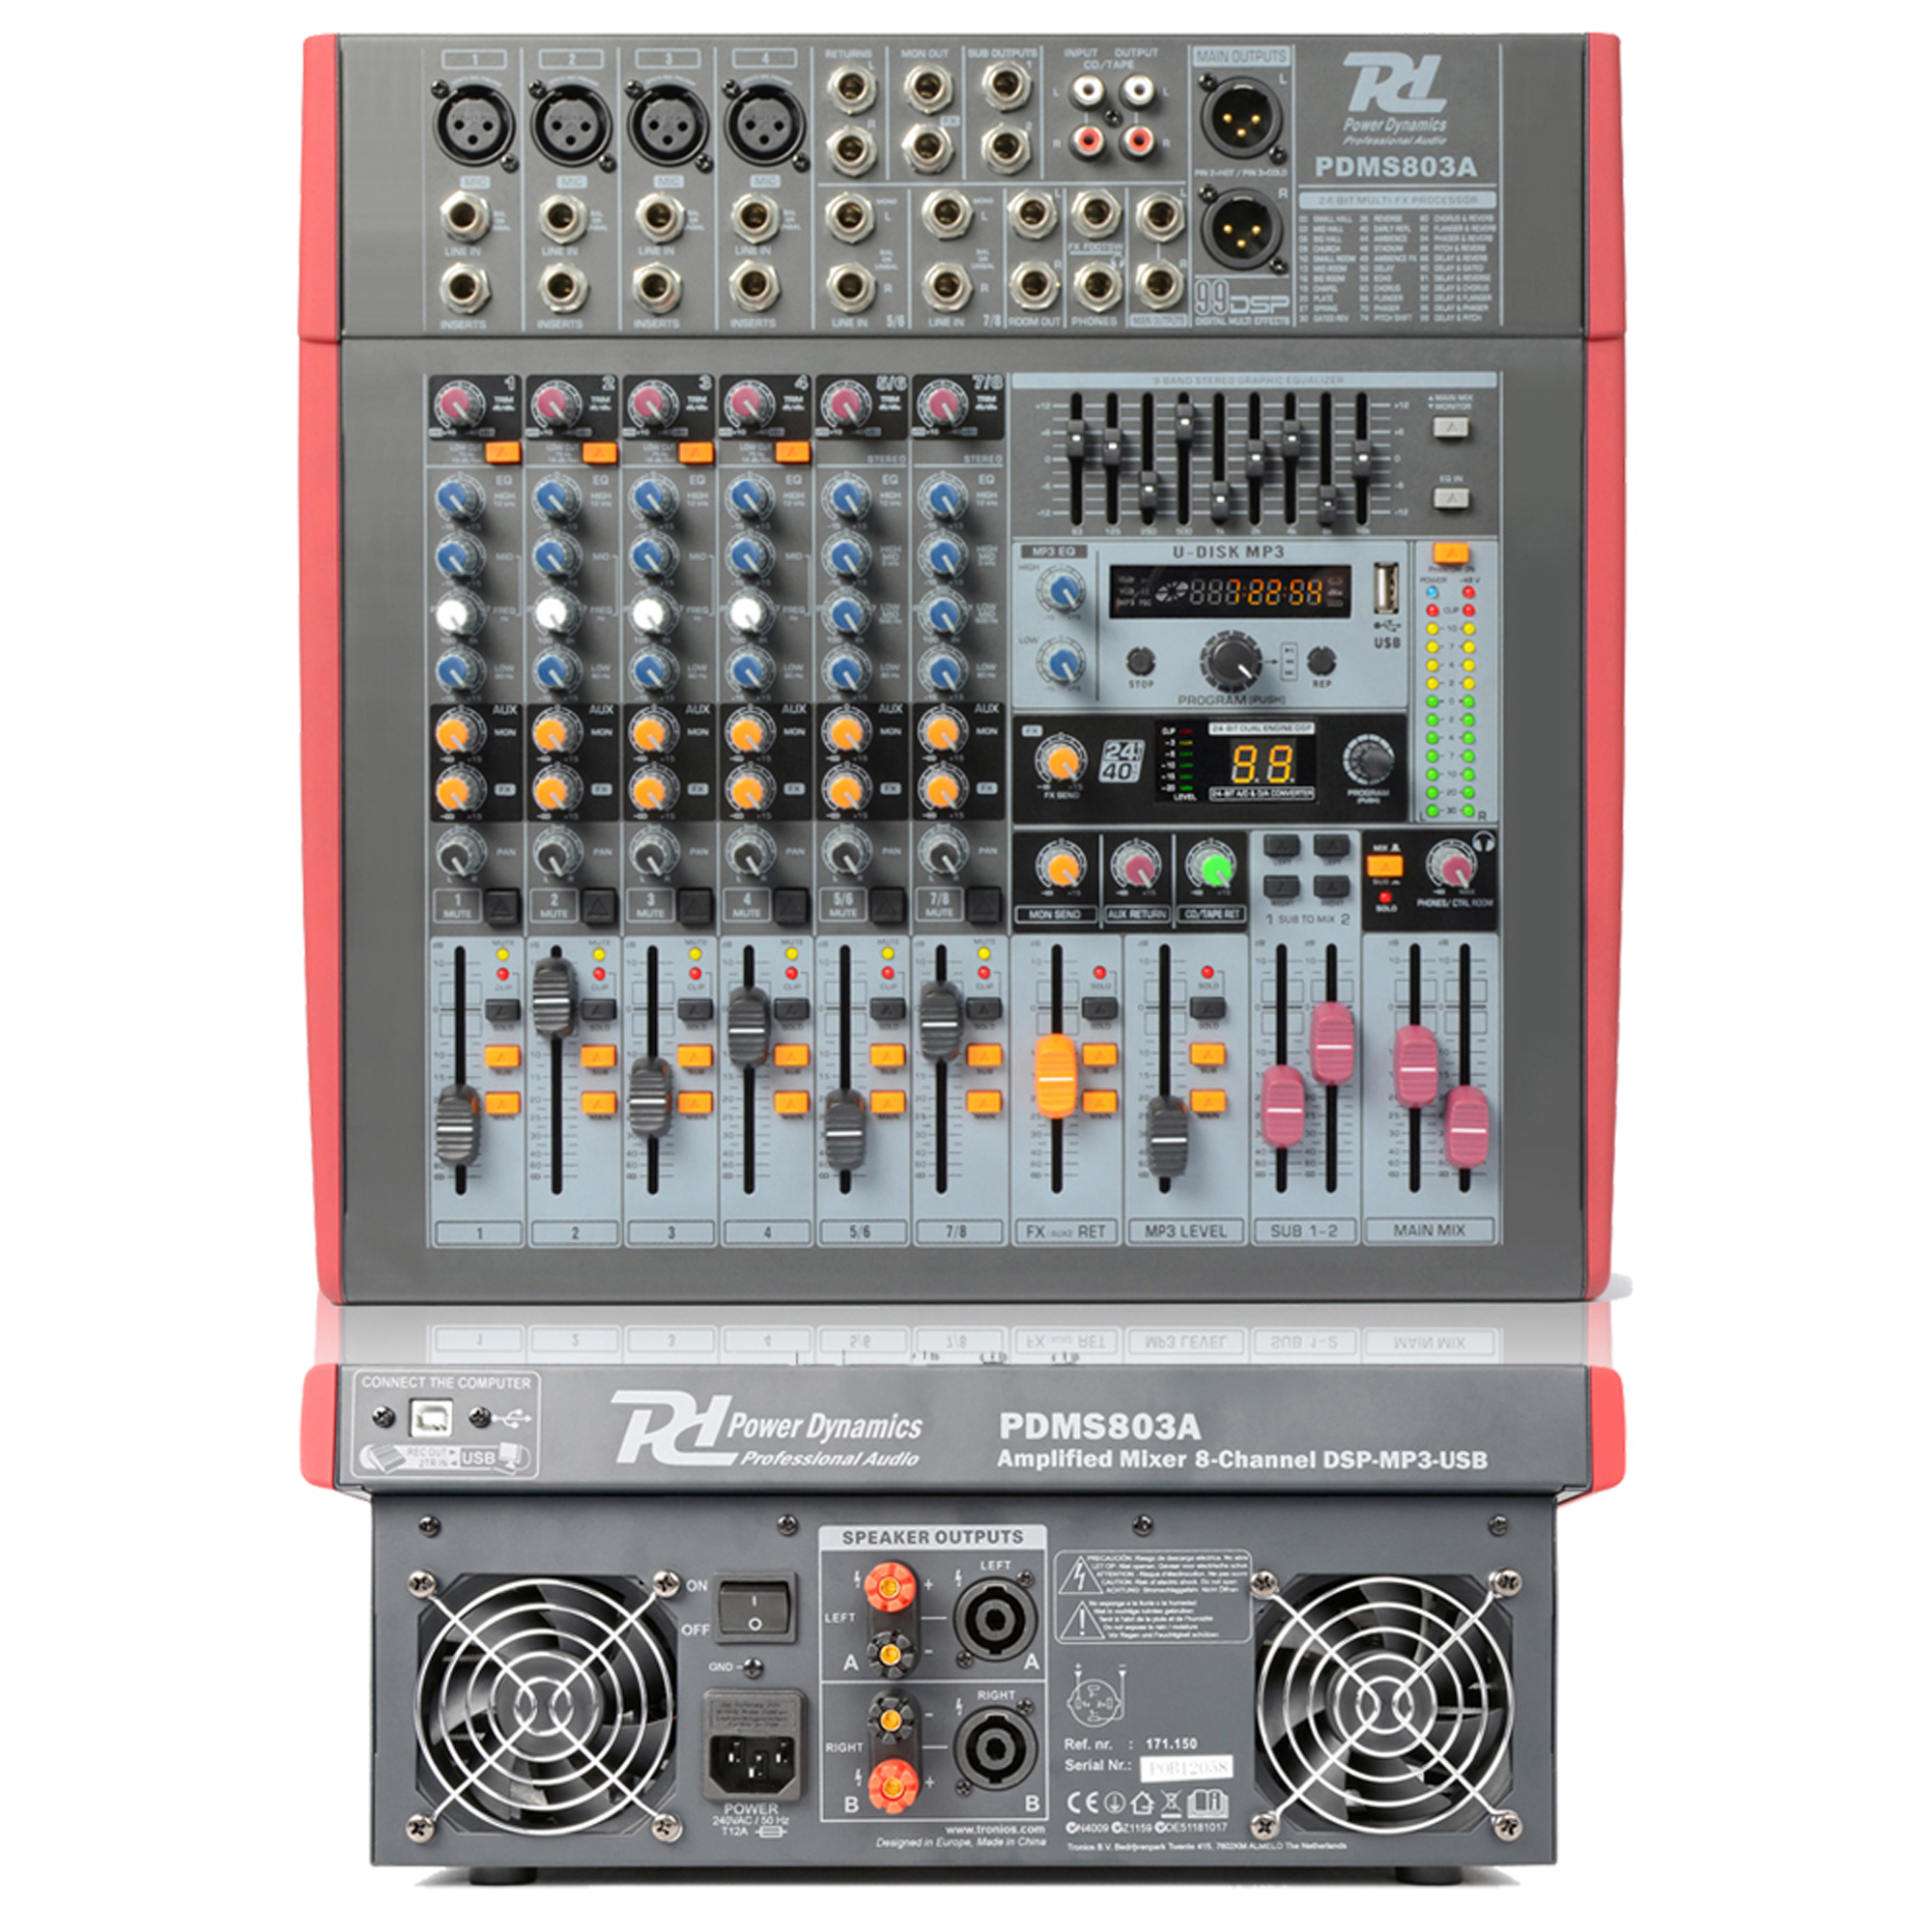 power dynamics pdm s803a amplified stage mixer 8 channel dsp effects usb 800w. Black Bedroom Furniture Sets. Home Design Ideas